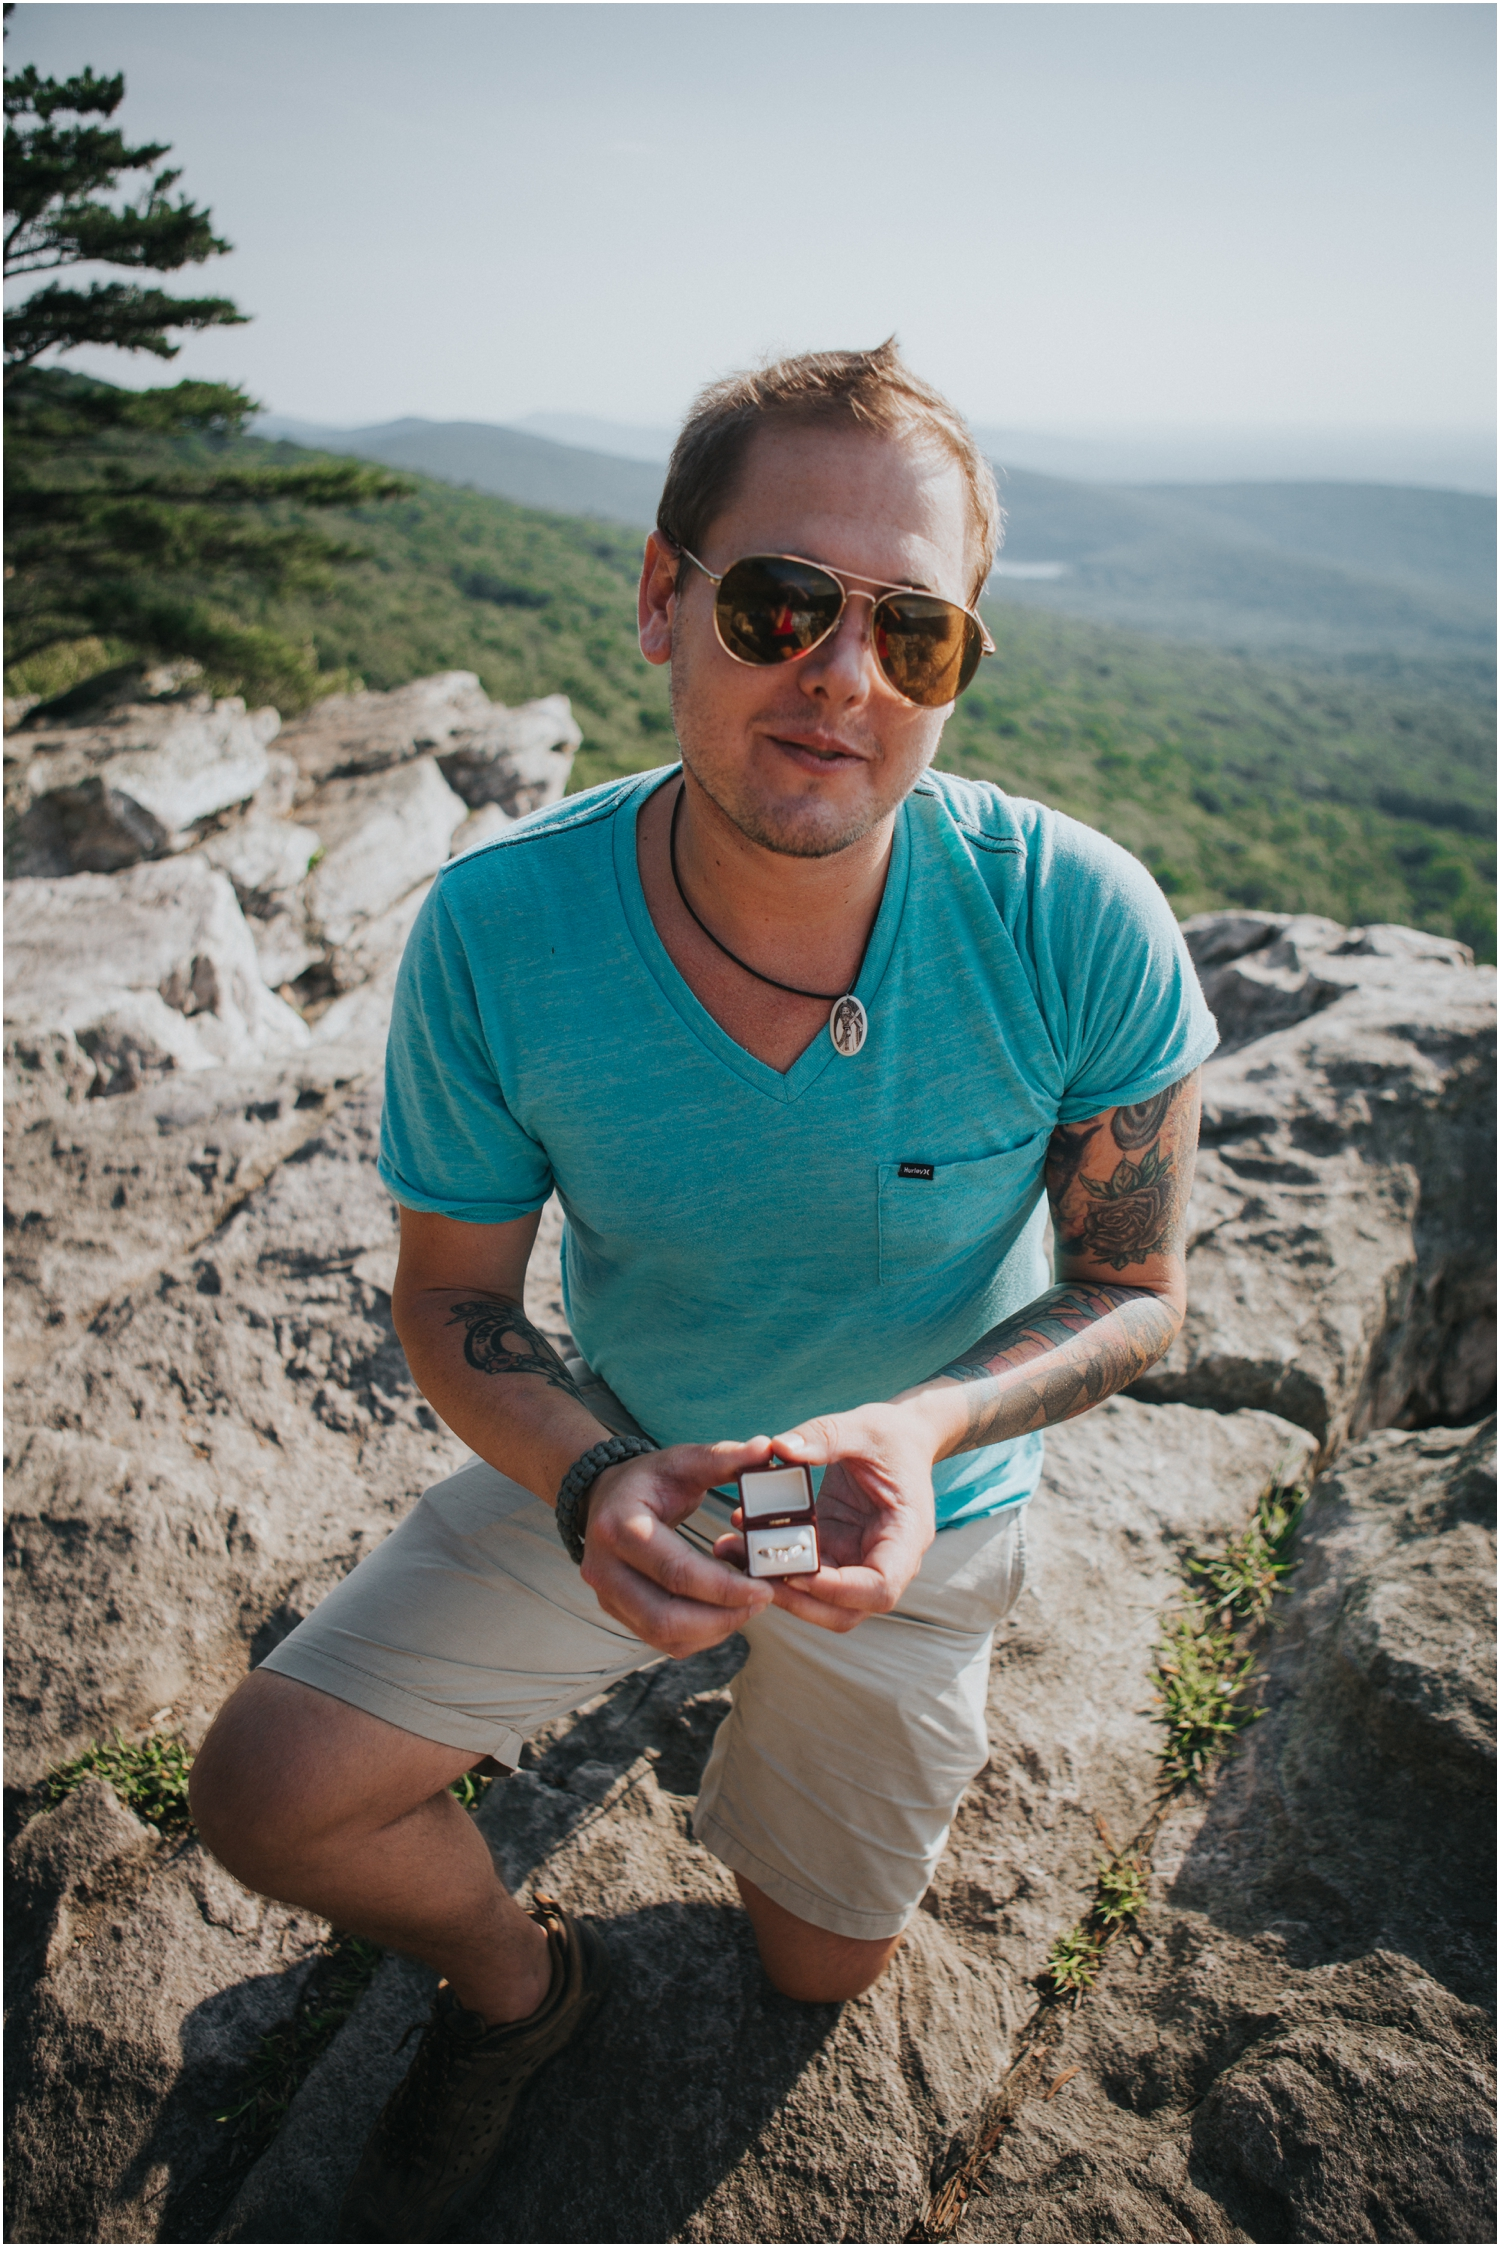 katy-sergent-photography-proposal-appalachian-trail-annapolis-rocks-adventurous-wedding-couples-intimate-elopement-hiking-backpacking-camping-photographer-johnson-city-tn-northeast-tennessee_0017.jpg